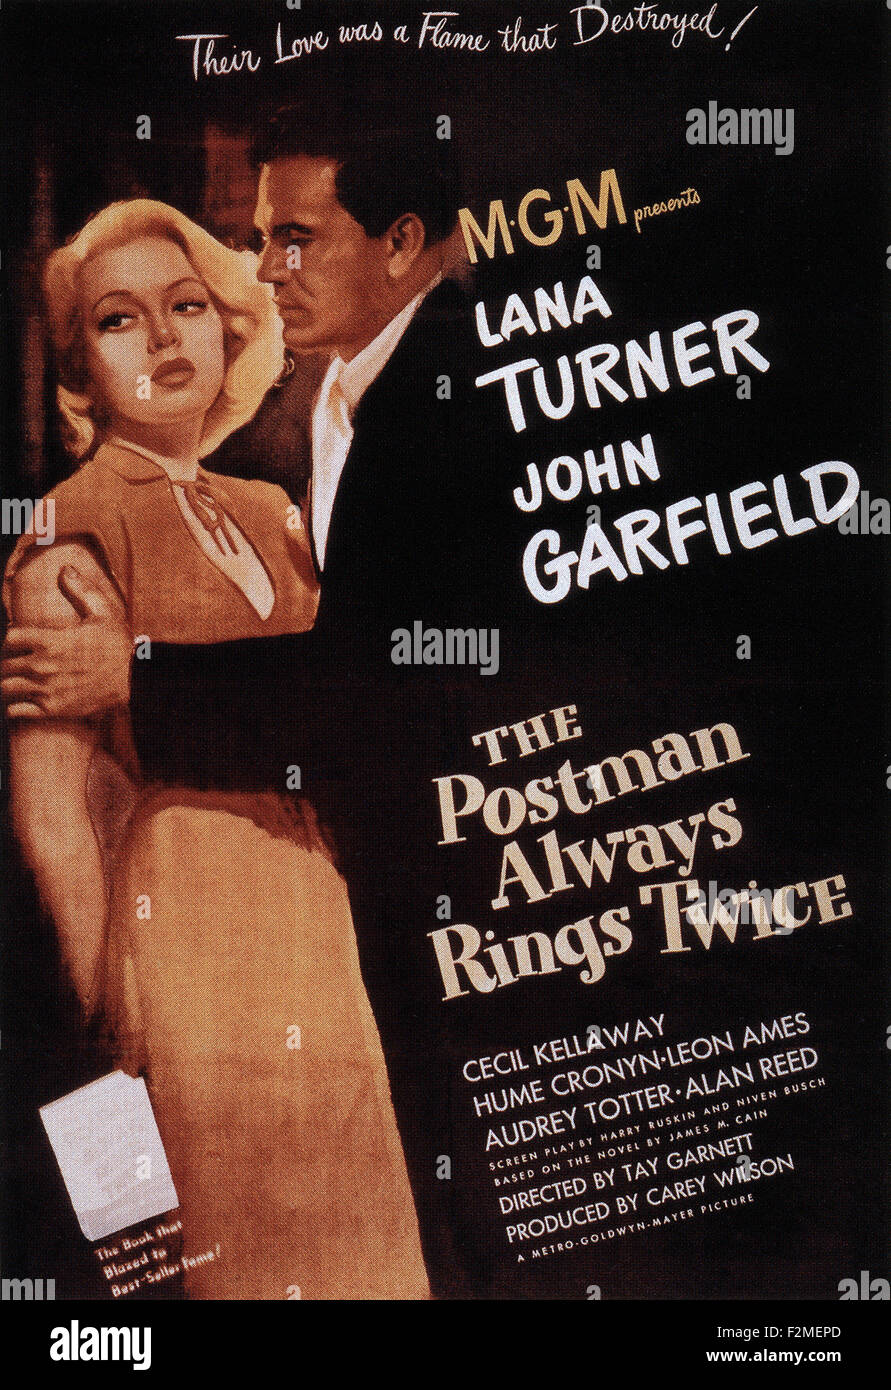 Postman Always Rings Twice, The  - Movie Poster - Stock Image